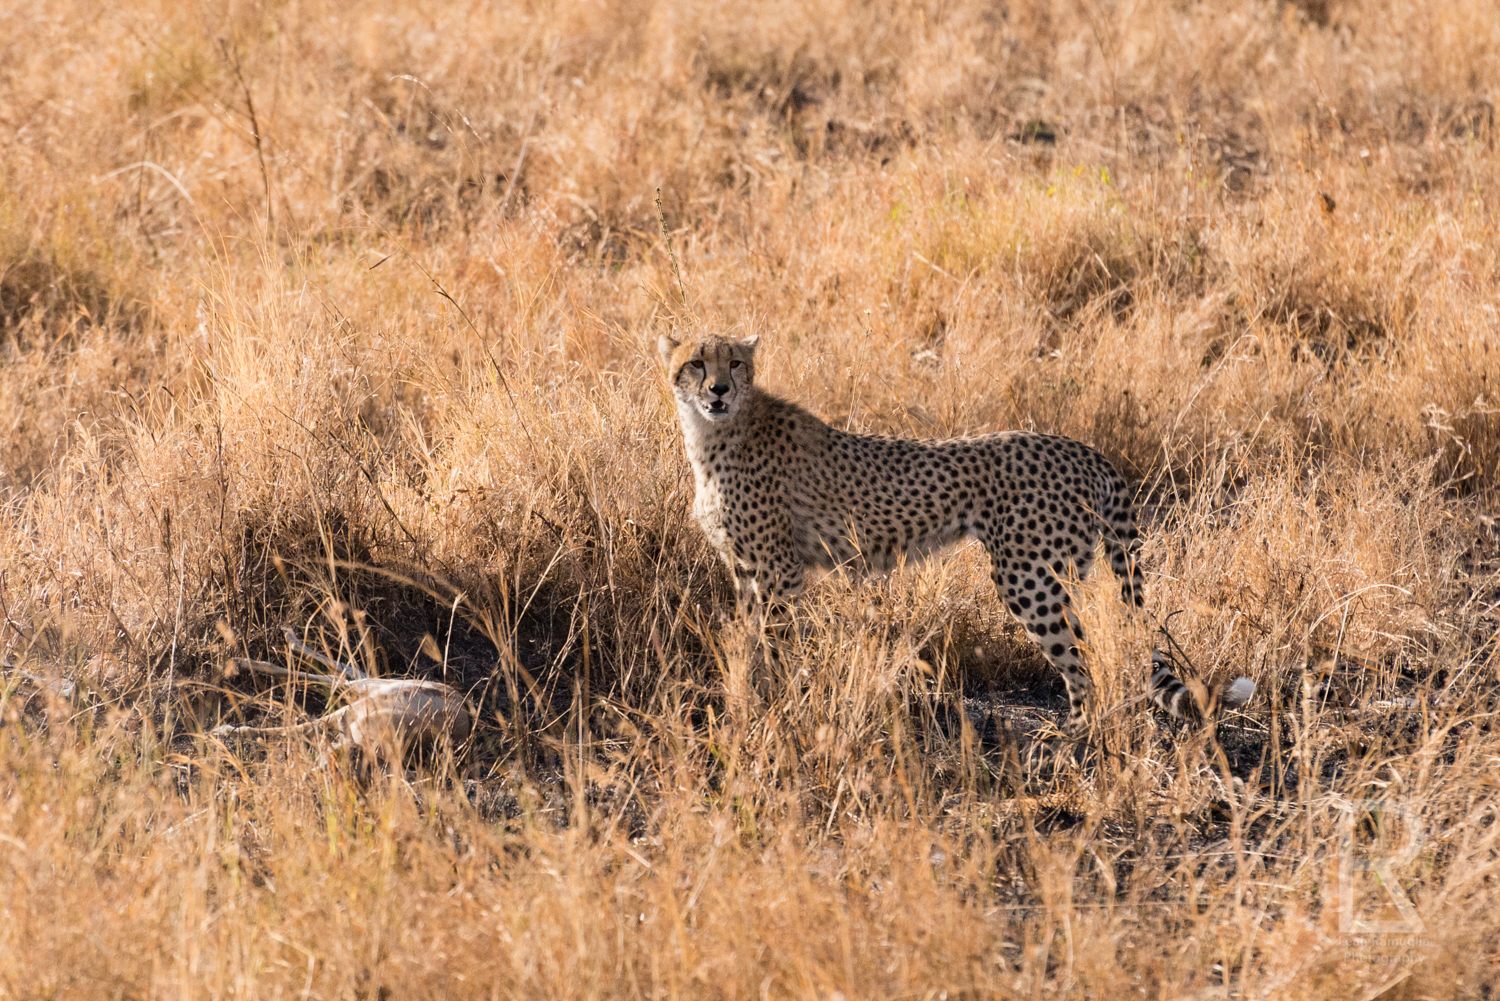 - I stood in the jeep and photographed what seemed like the slowest death ever. Watching in amazement at a cheetah cub learn to hunt, while also witnessing a young gazelle's long fought battle for life, if not just for a few more moments.